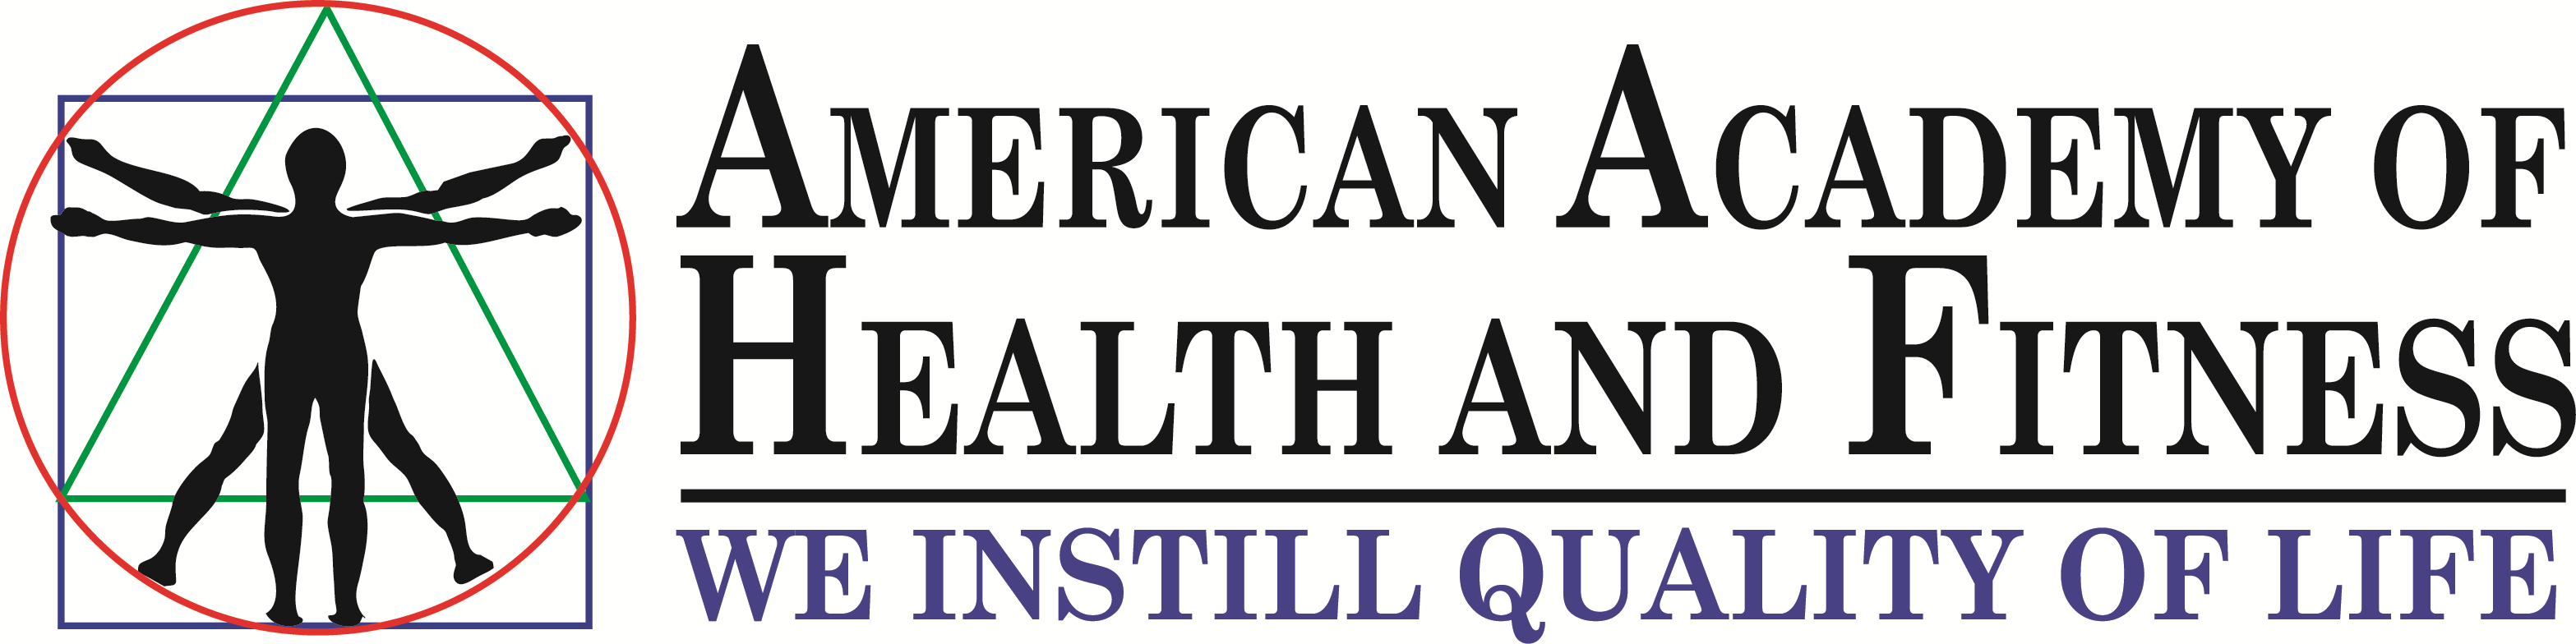 The American Academy of Health and Fitness